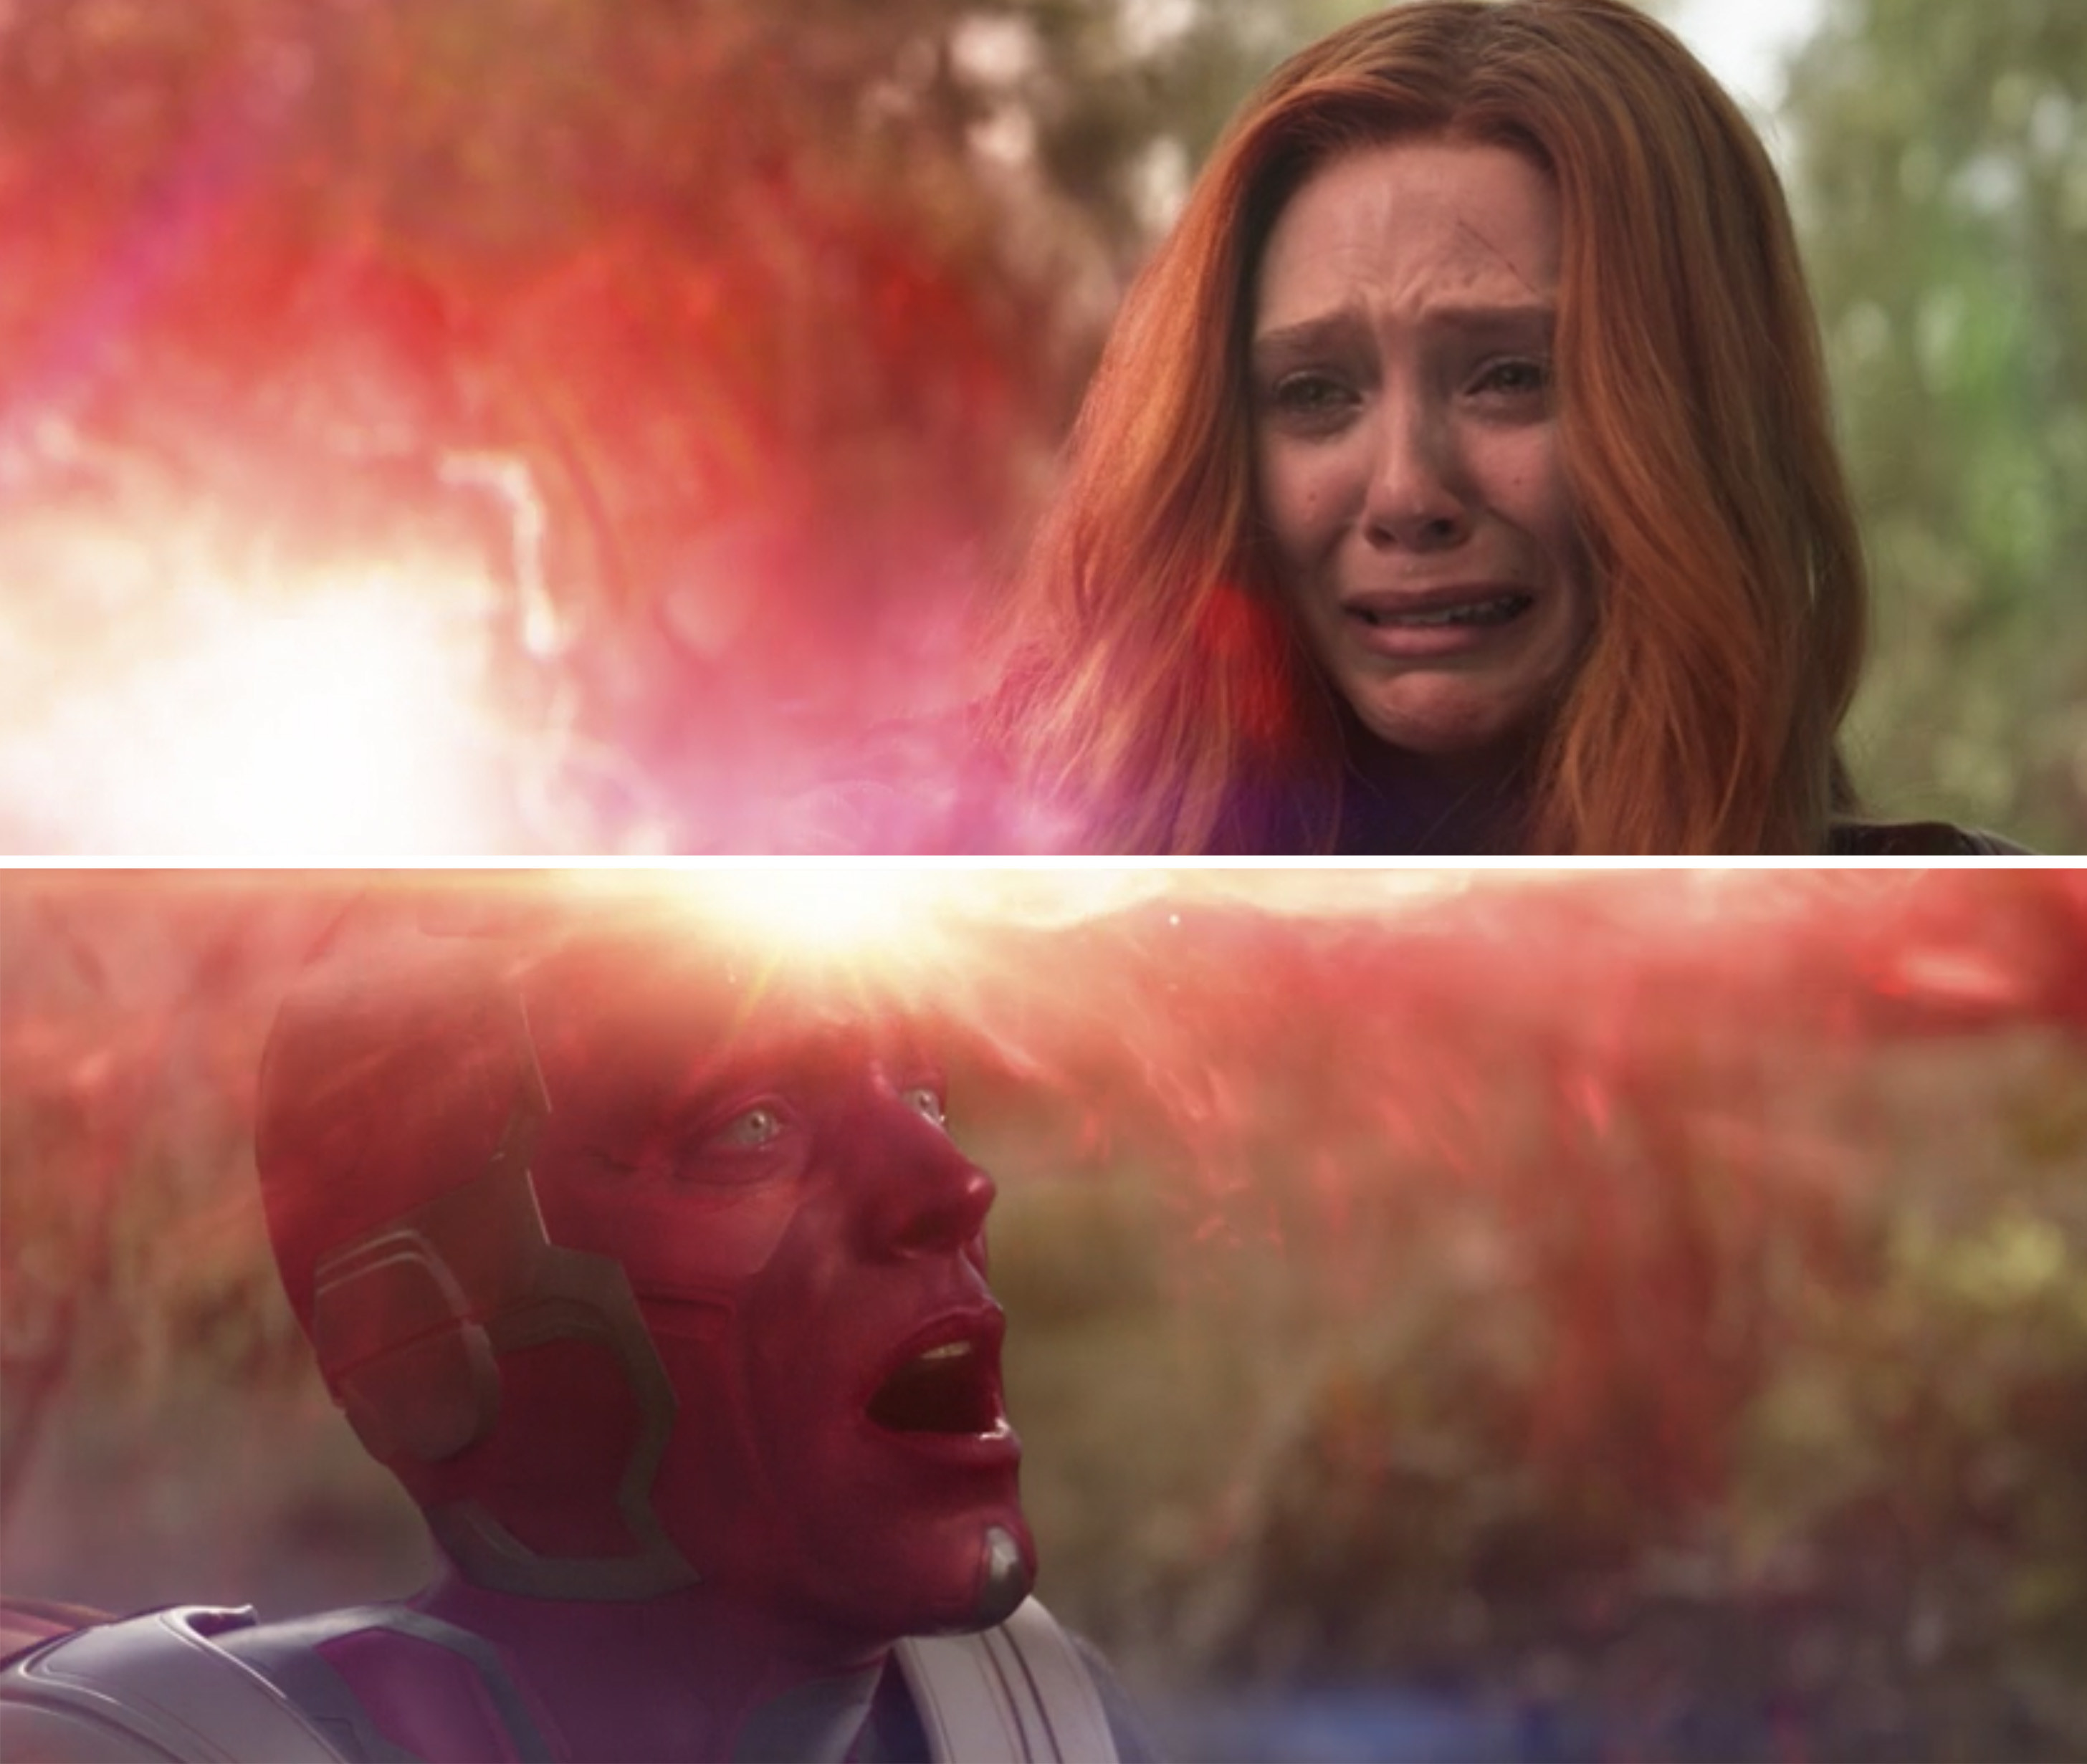 Wanda weeping while destroying the Mind Stone in Vision's head